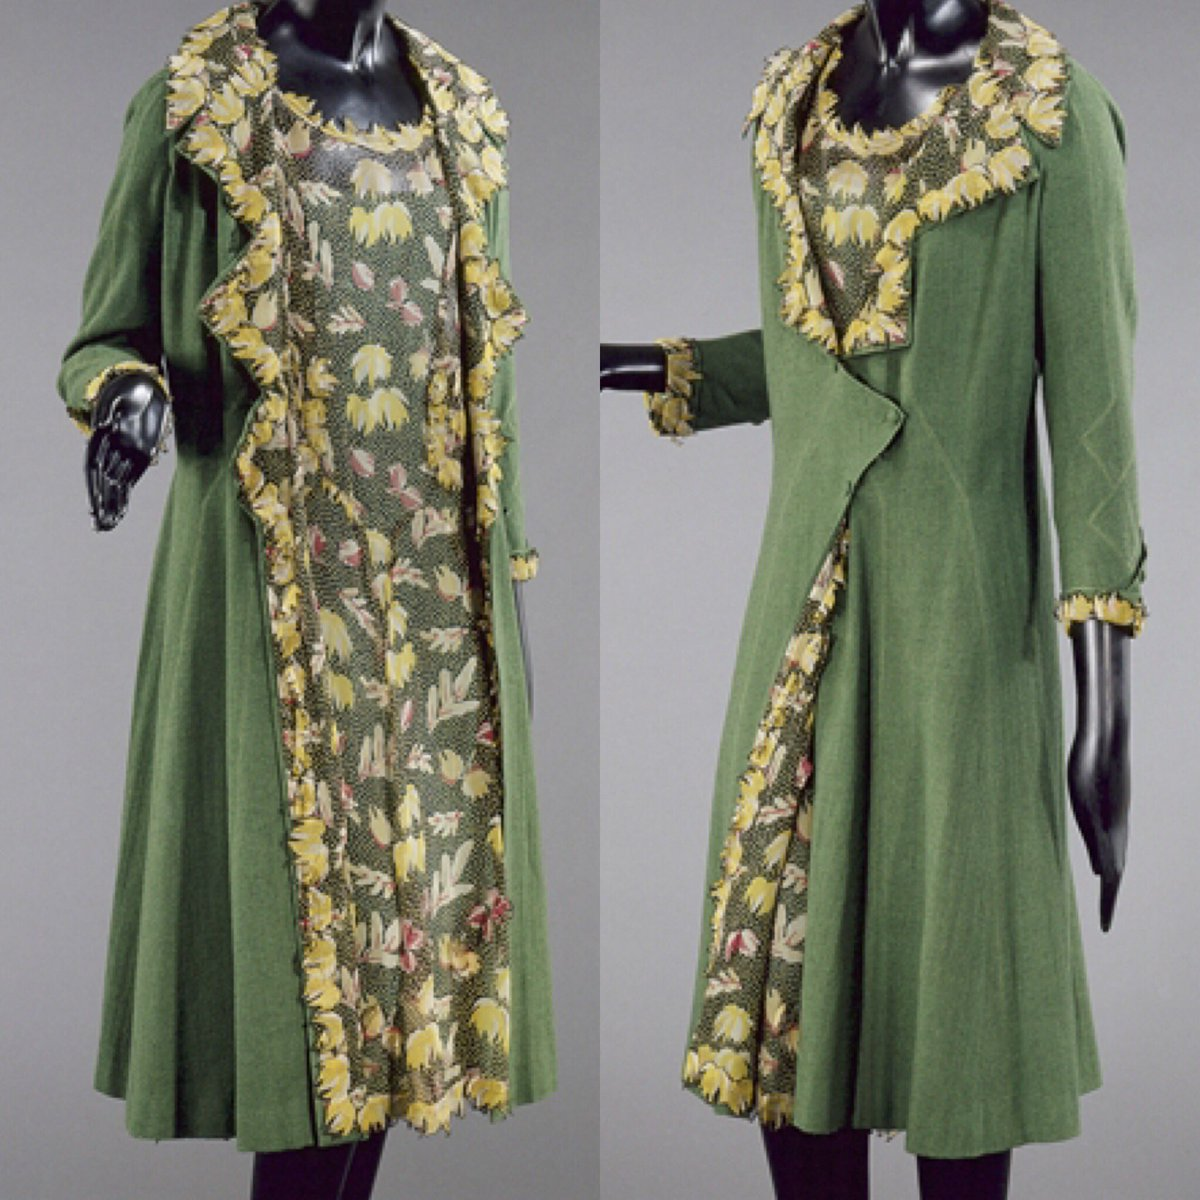 Travelling home today, I shall imagine myself arrayed in this #1920s @CHANELofficiaI ensemble, printed silk muslin dress & green cotton coat with matching lining & chic asymmetric fastening. The reality is a 6 hour ferry journey & plethora of sick bags.....*sigh* @PalaisGalliera<br>http://pic.twitter.com/143nbrKu2y